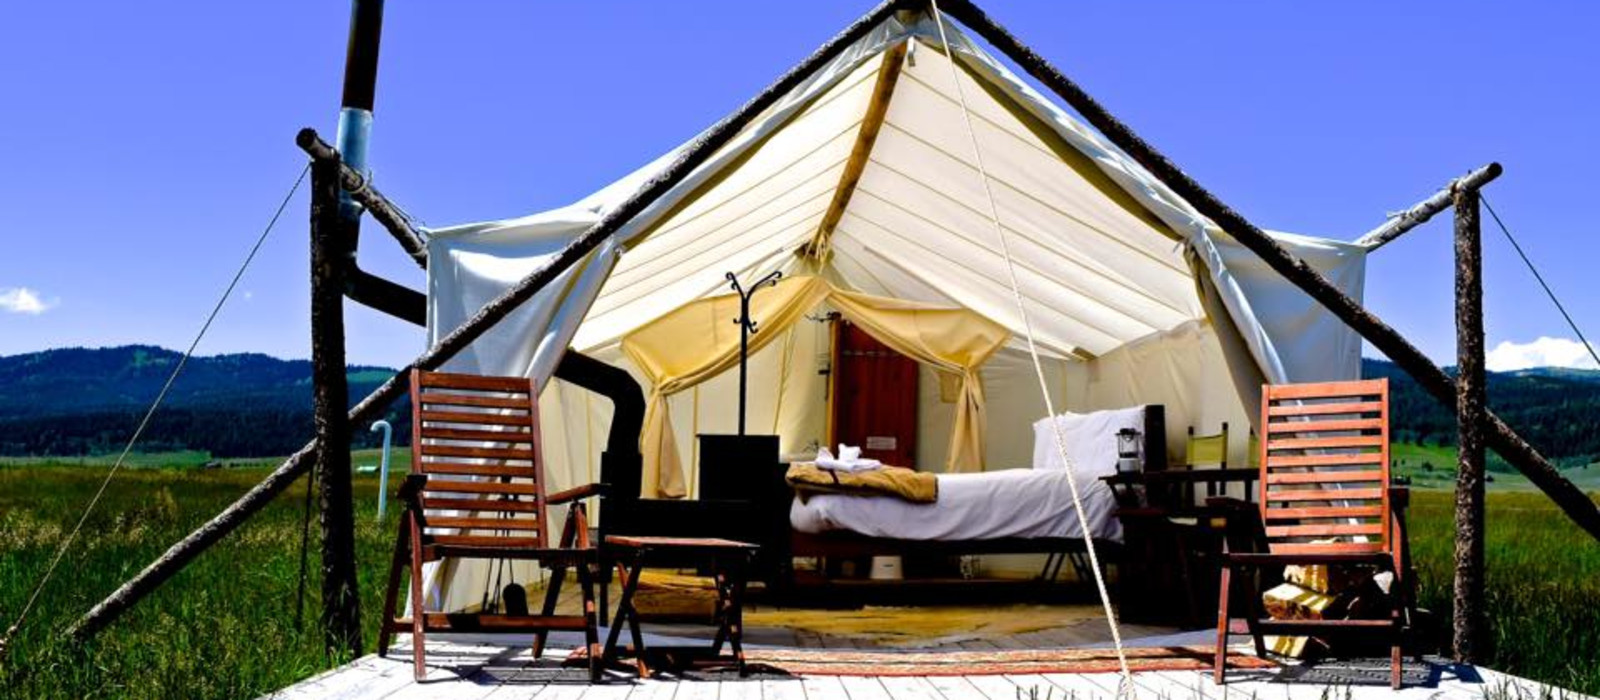 Hotel Under Canvas Yellowstone USA